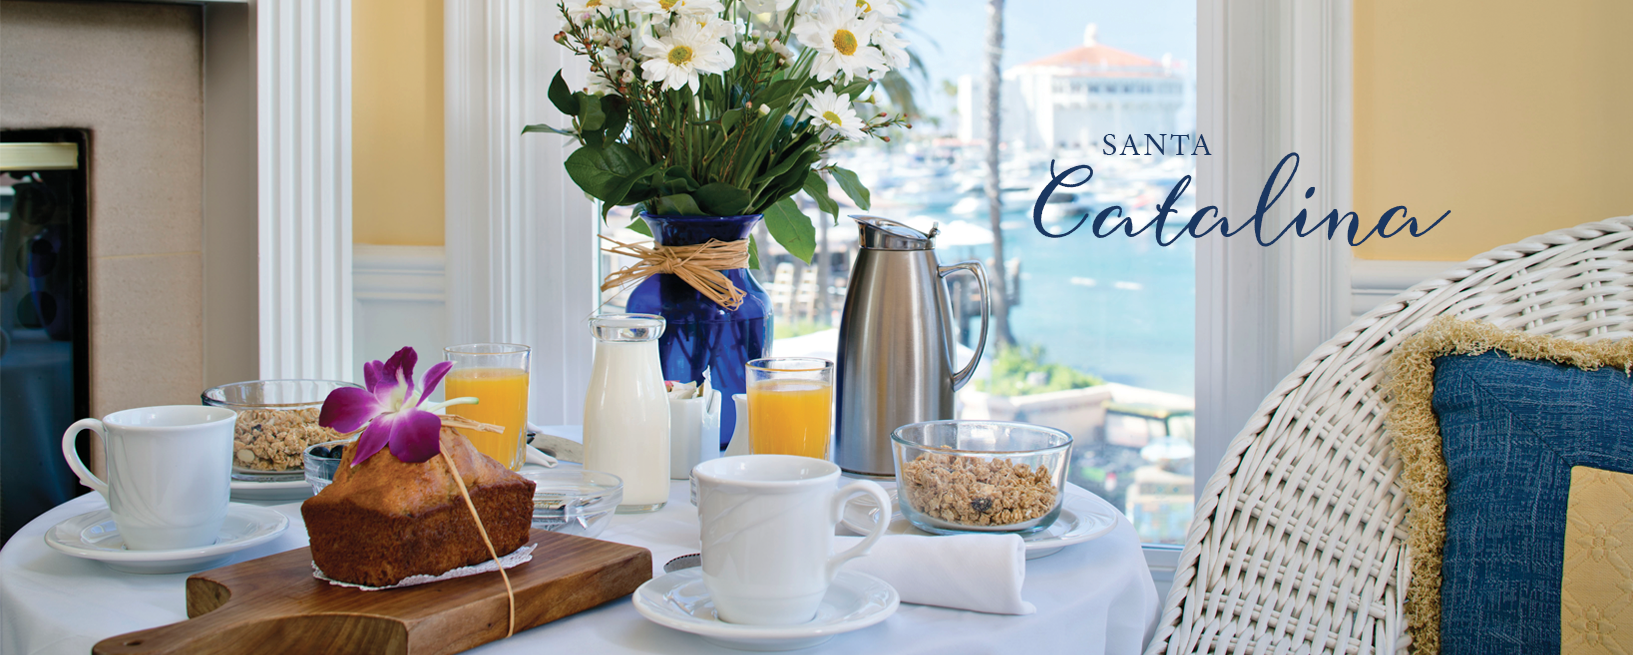 Santa Catalina Room - Header